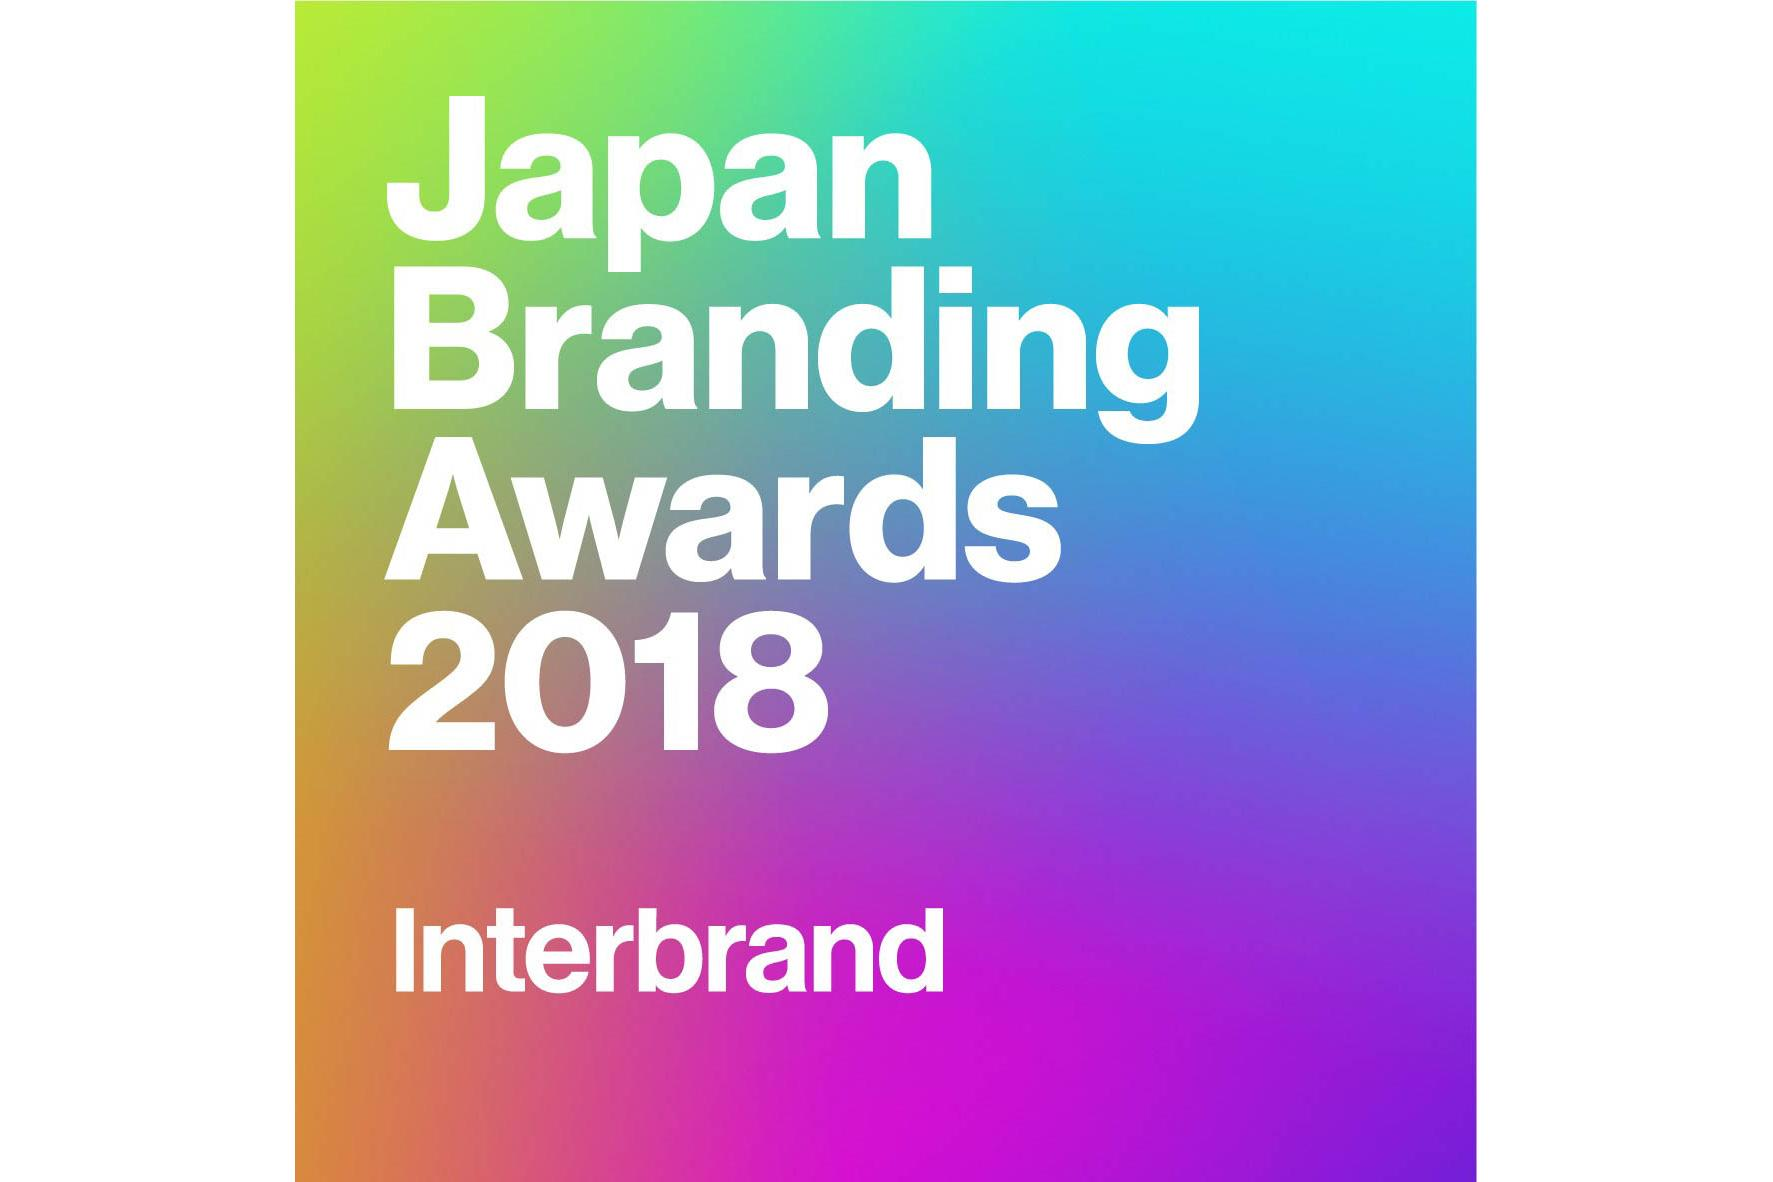 image: The Japan Branding Awards 2018 award logo